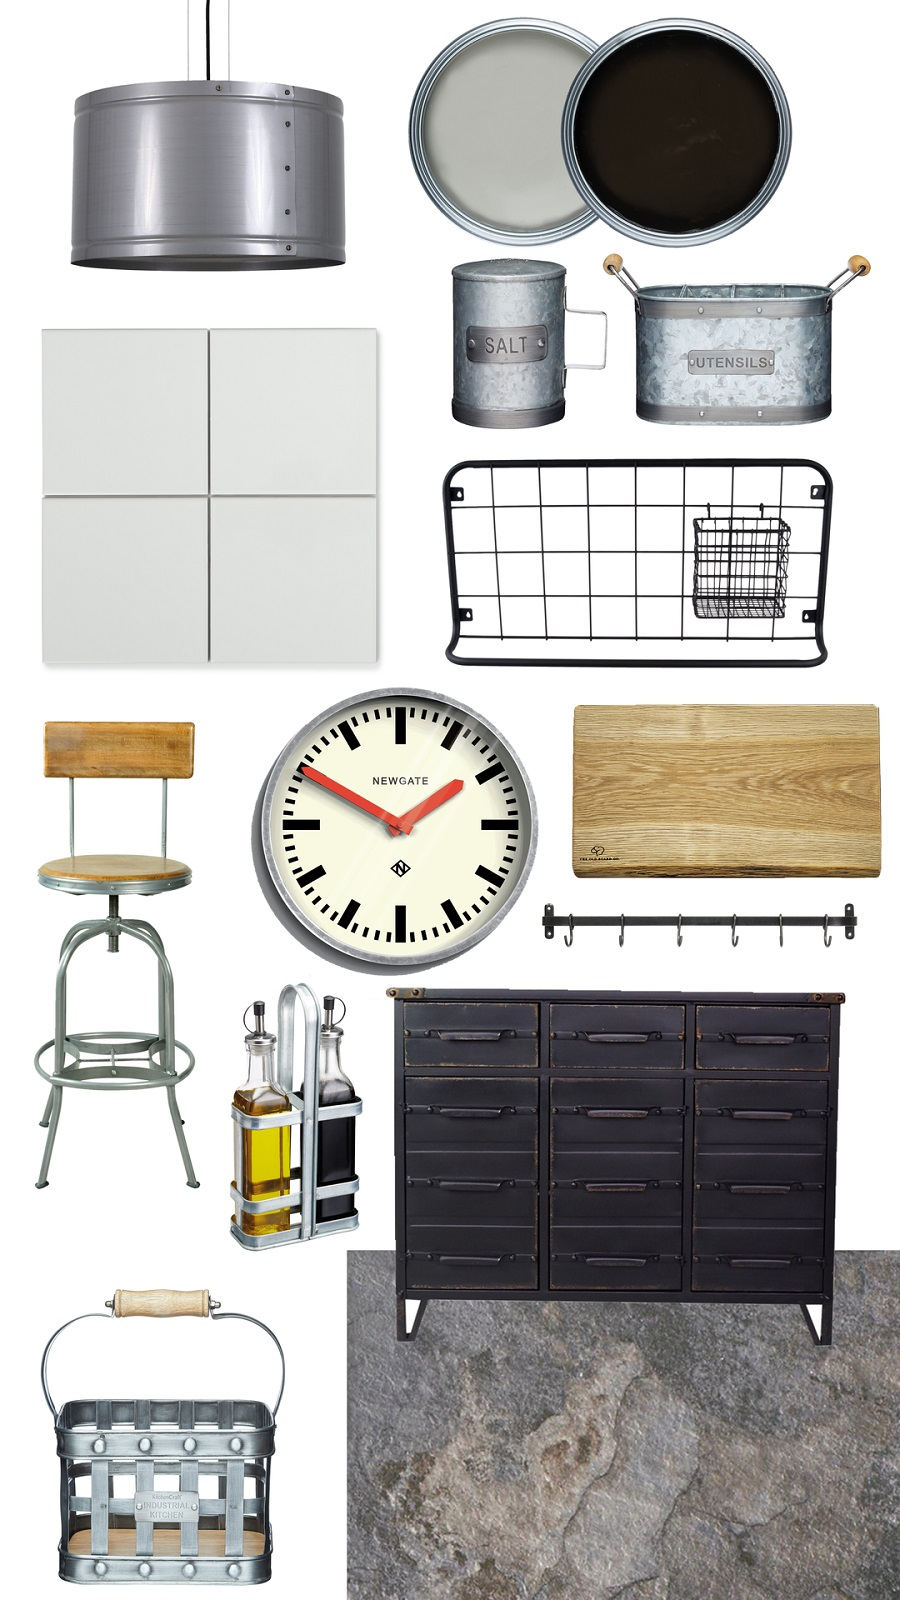 Introduce Some Industrial Style into The Kitchen